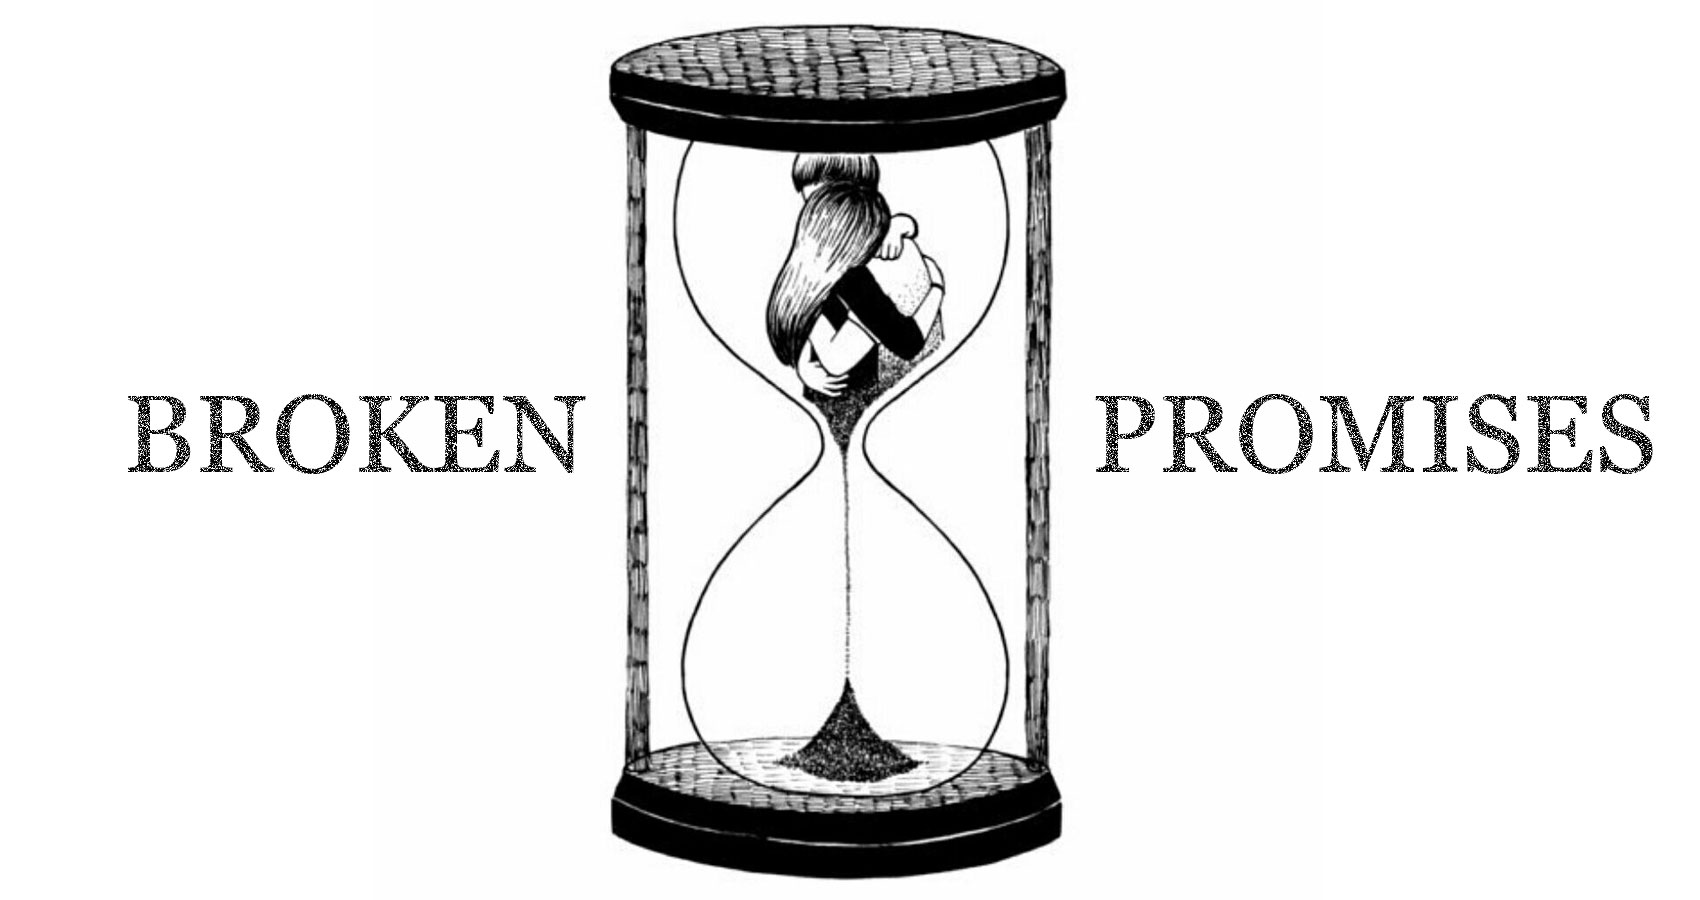 Broken promises at Spillwords.com